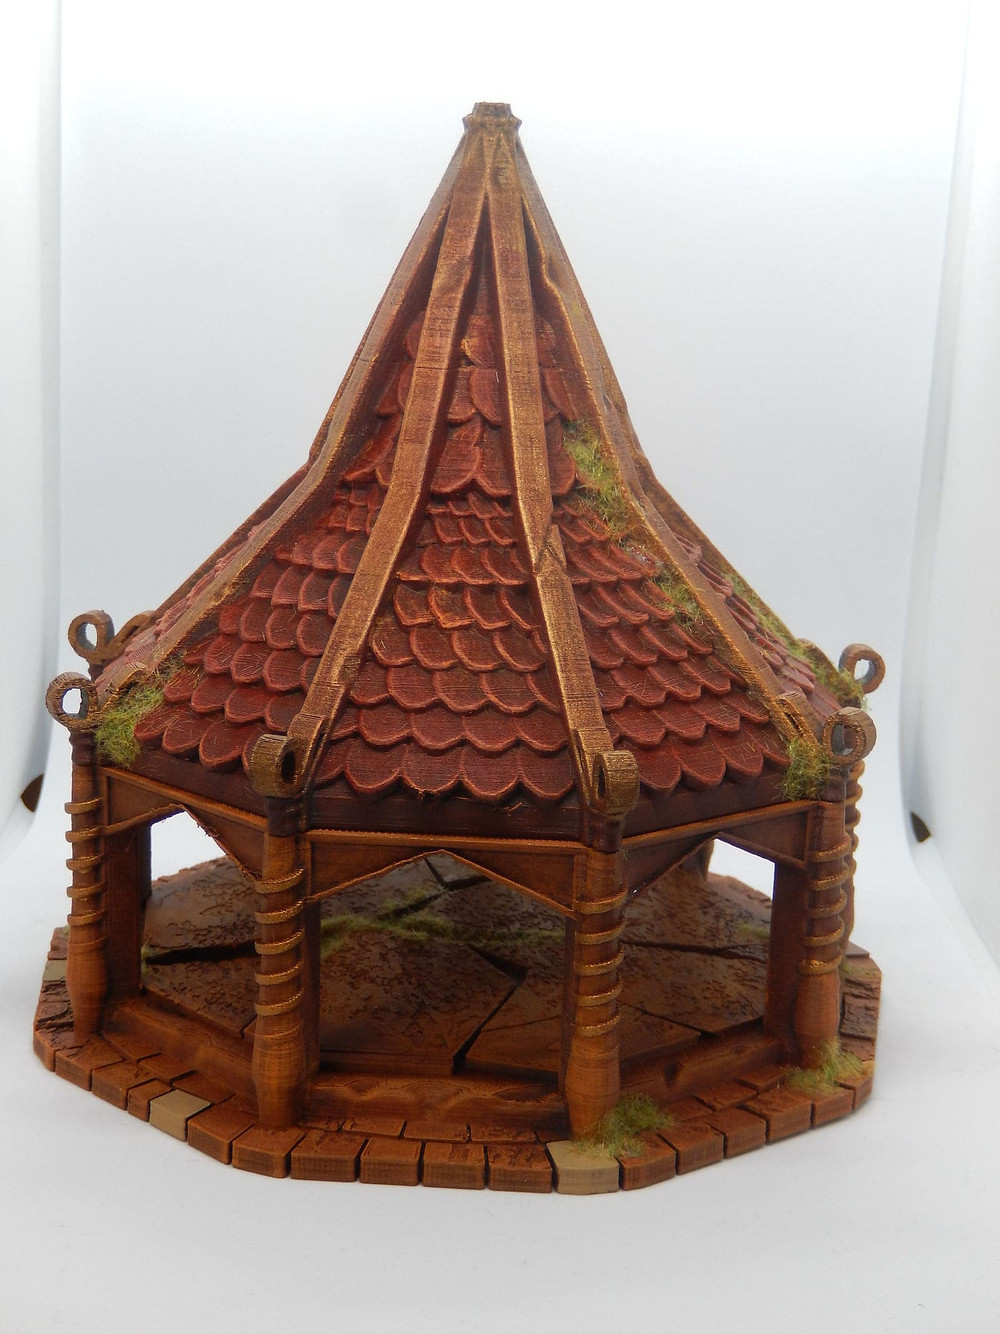 Elf air spire building inspired by Myth Drannor and Rivendell